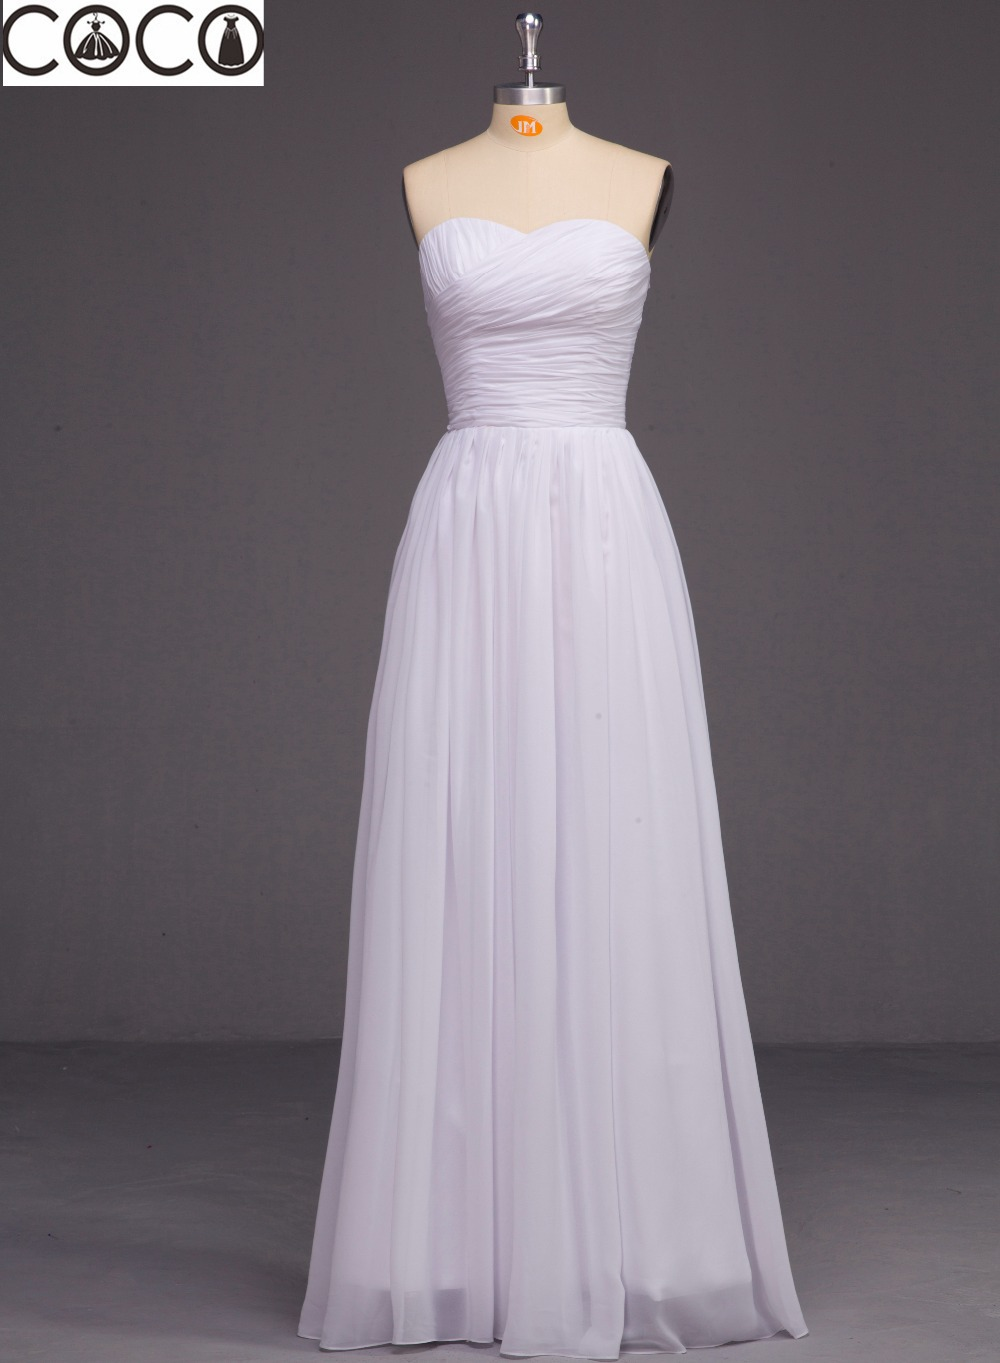 2015 cocodress a line sweetheart chiffon ruched white for Real simple wedding dresses